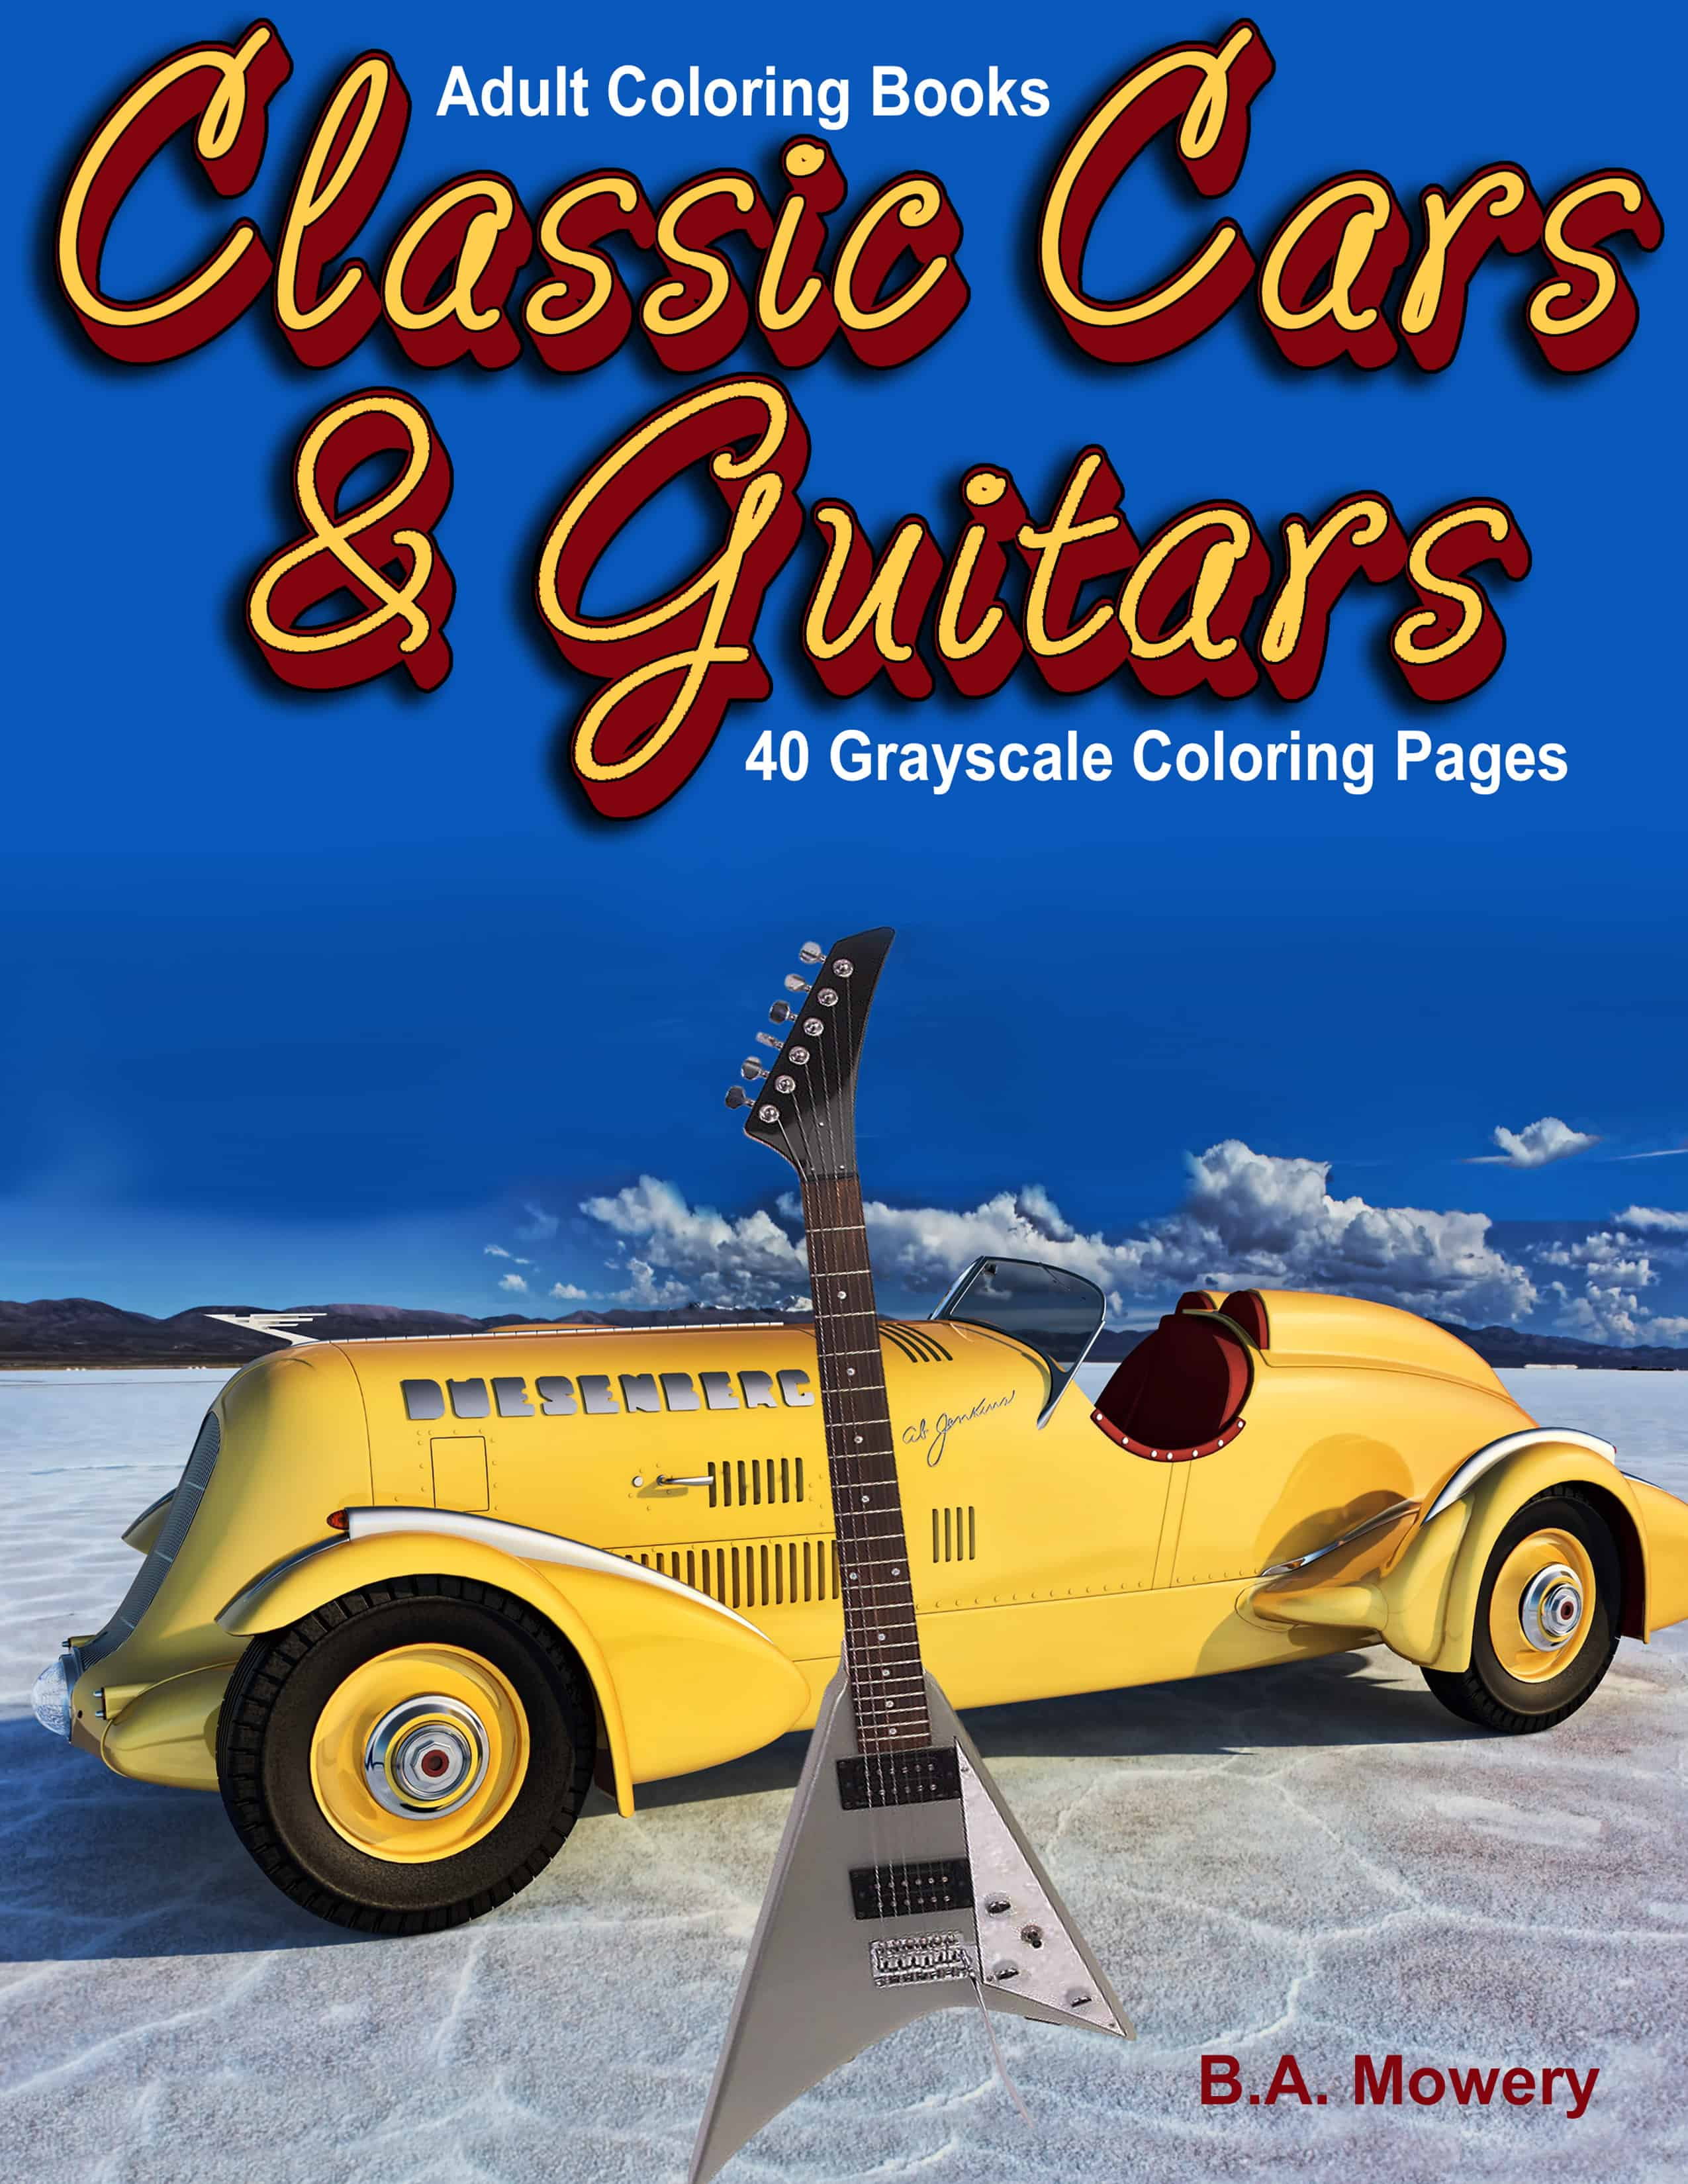 Classic Cars Guitars Adult Coloring Book Adult Coloring Books